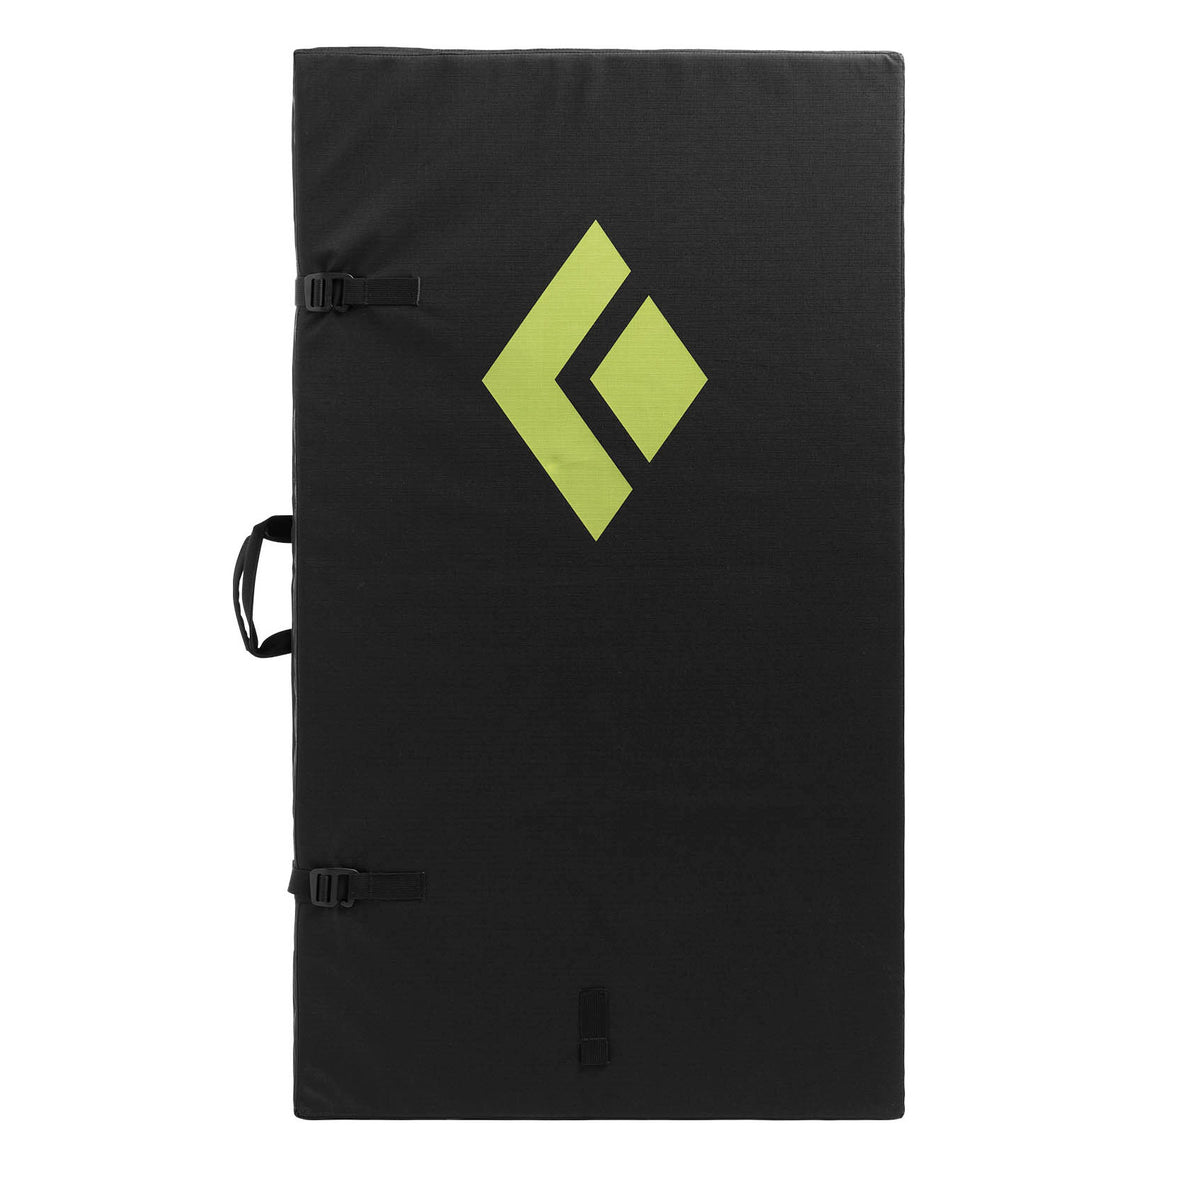 Black Diamond Impact bouldering pad, shown fully closed and stood upright with carry handle